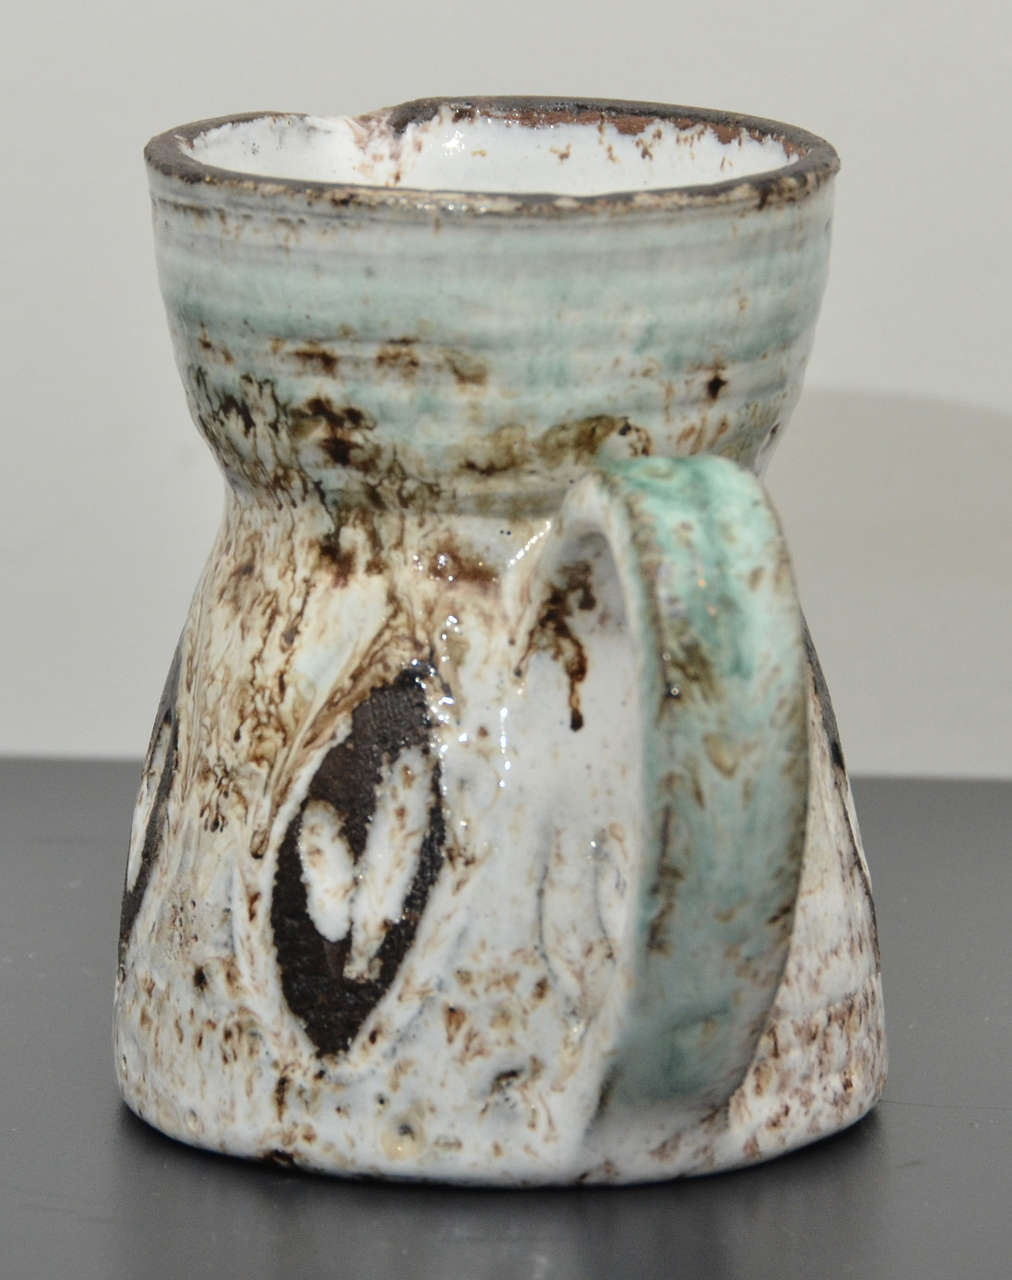 Small Brown, White and Turquoise Pitcher by Accolay 3